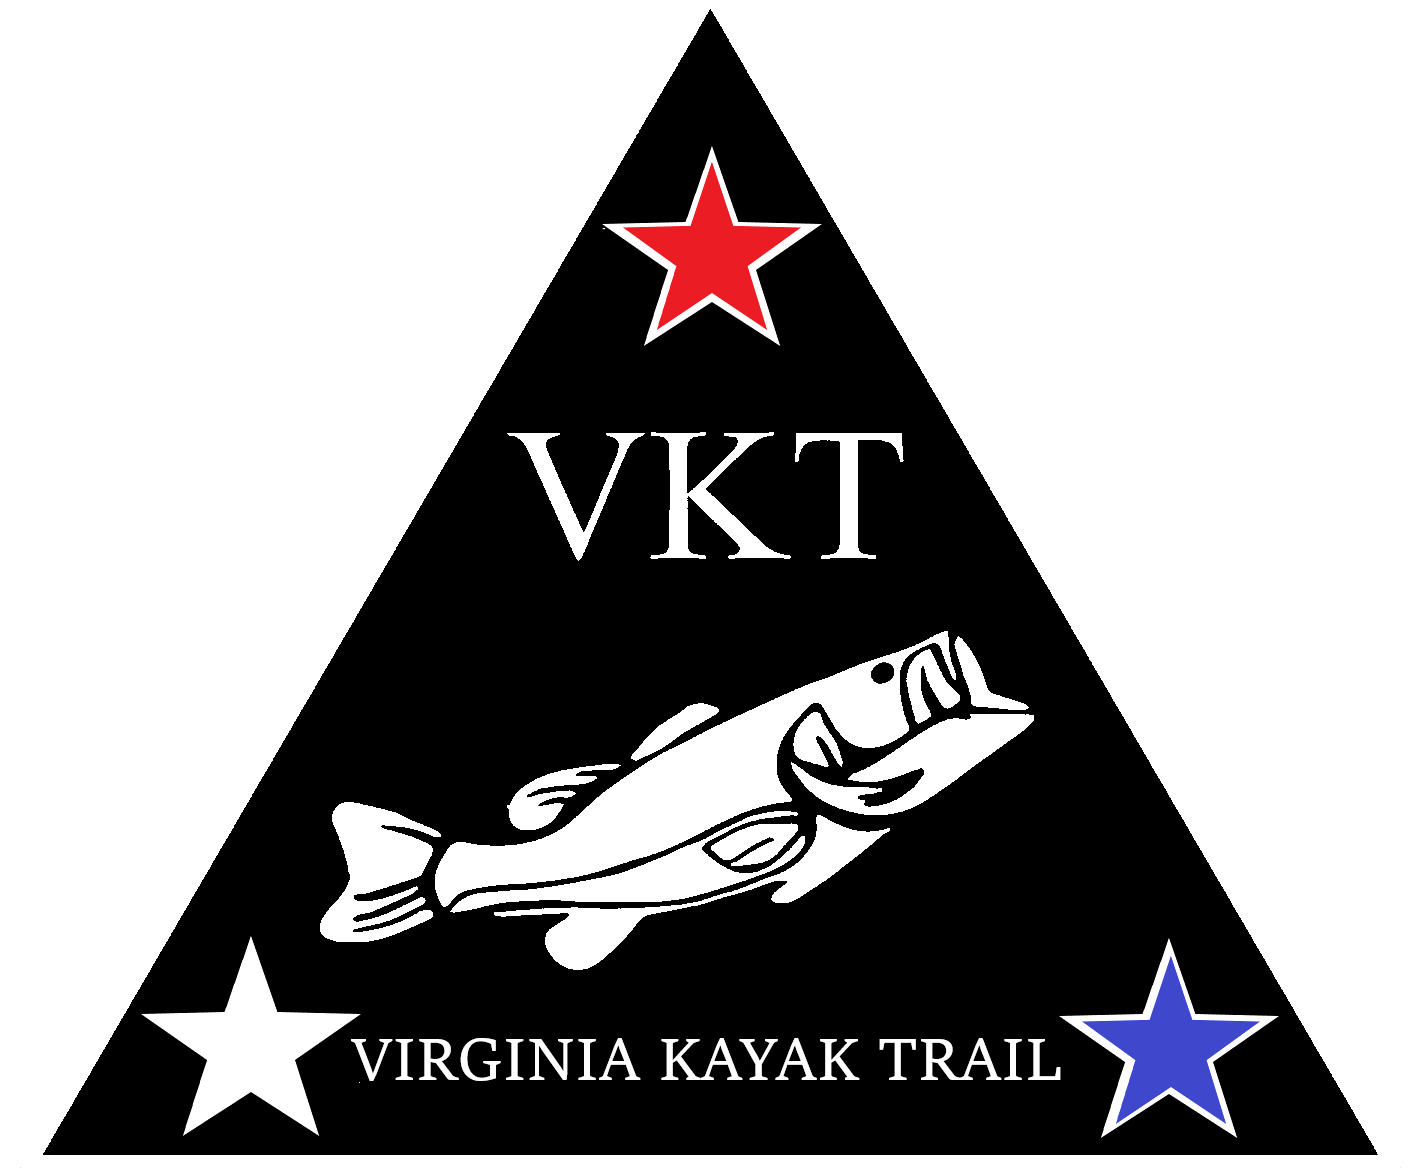 Virginia Kayak Trail, LLC